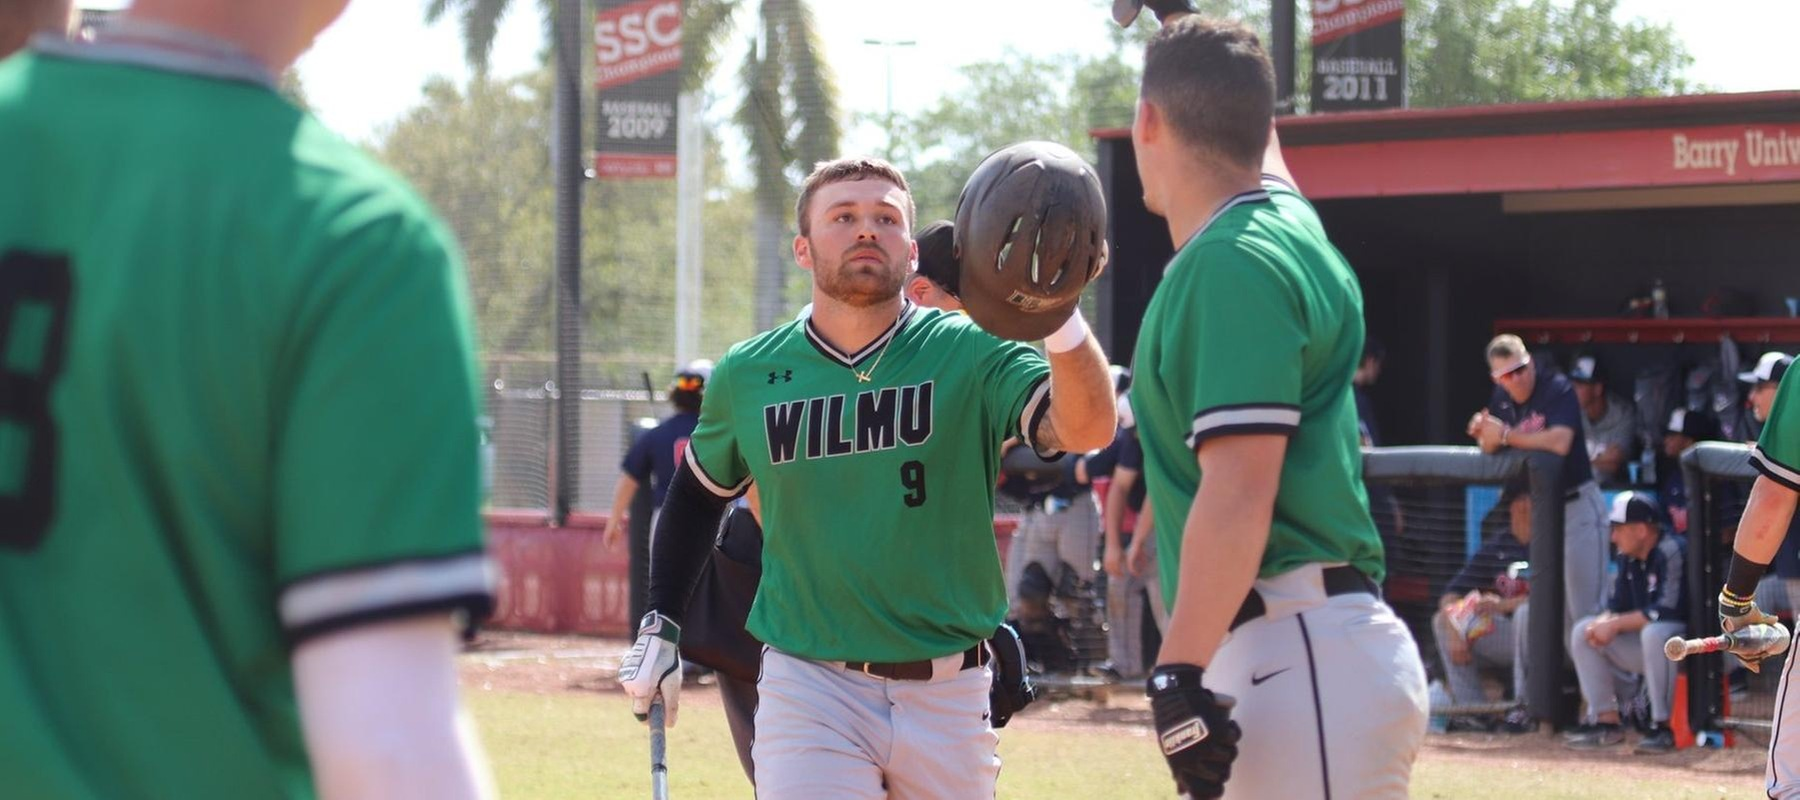 Copyright 2019; Wilmington University. All rights reserved. Photo by Heather Leslie. March 9, 2019 vs. Queens at Barry University.